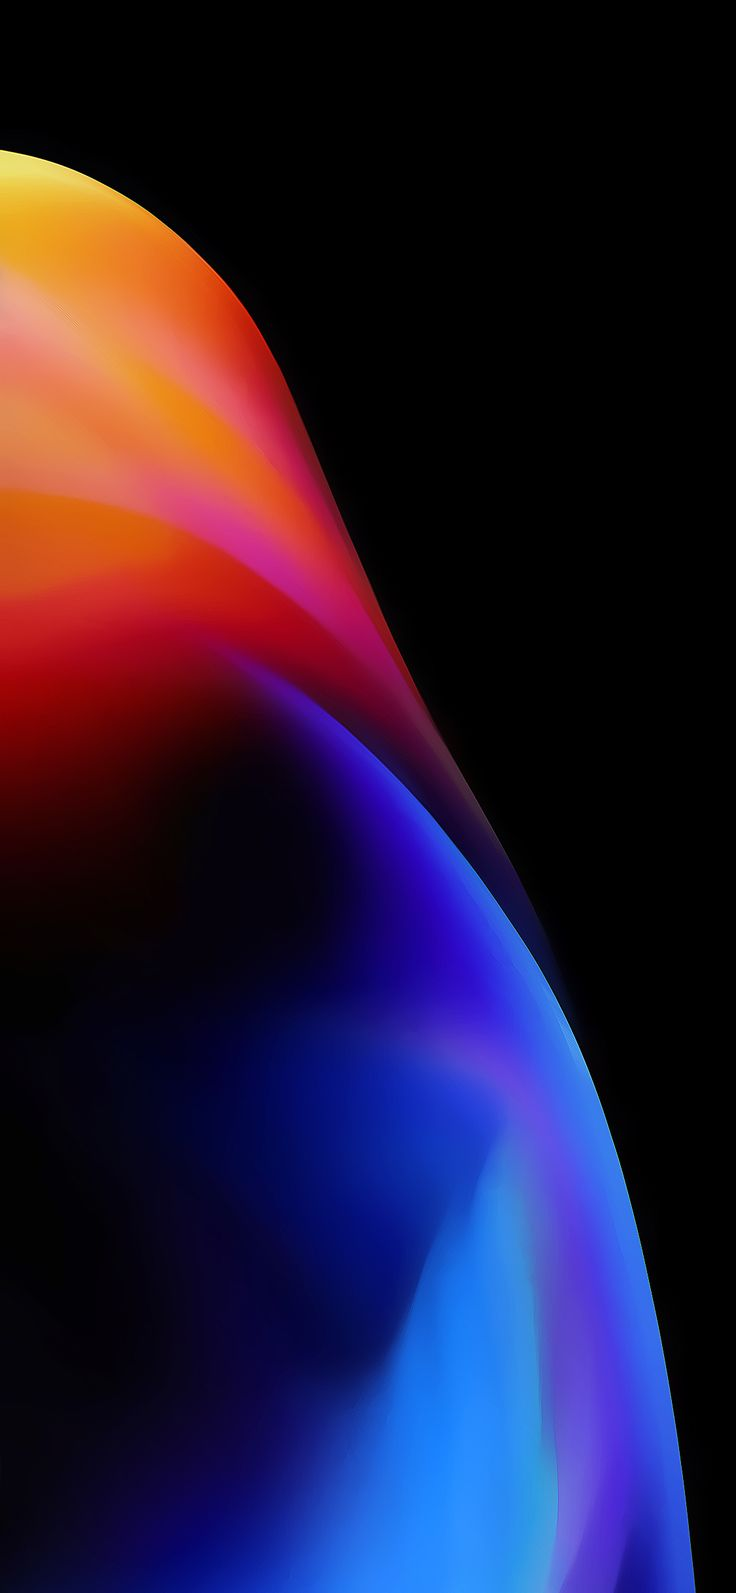 Unduh 55 Wallpaper Iphone Ios 12 Hd HD Terbaru